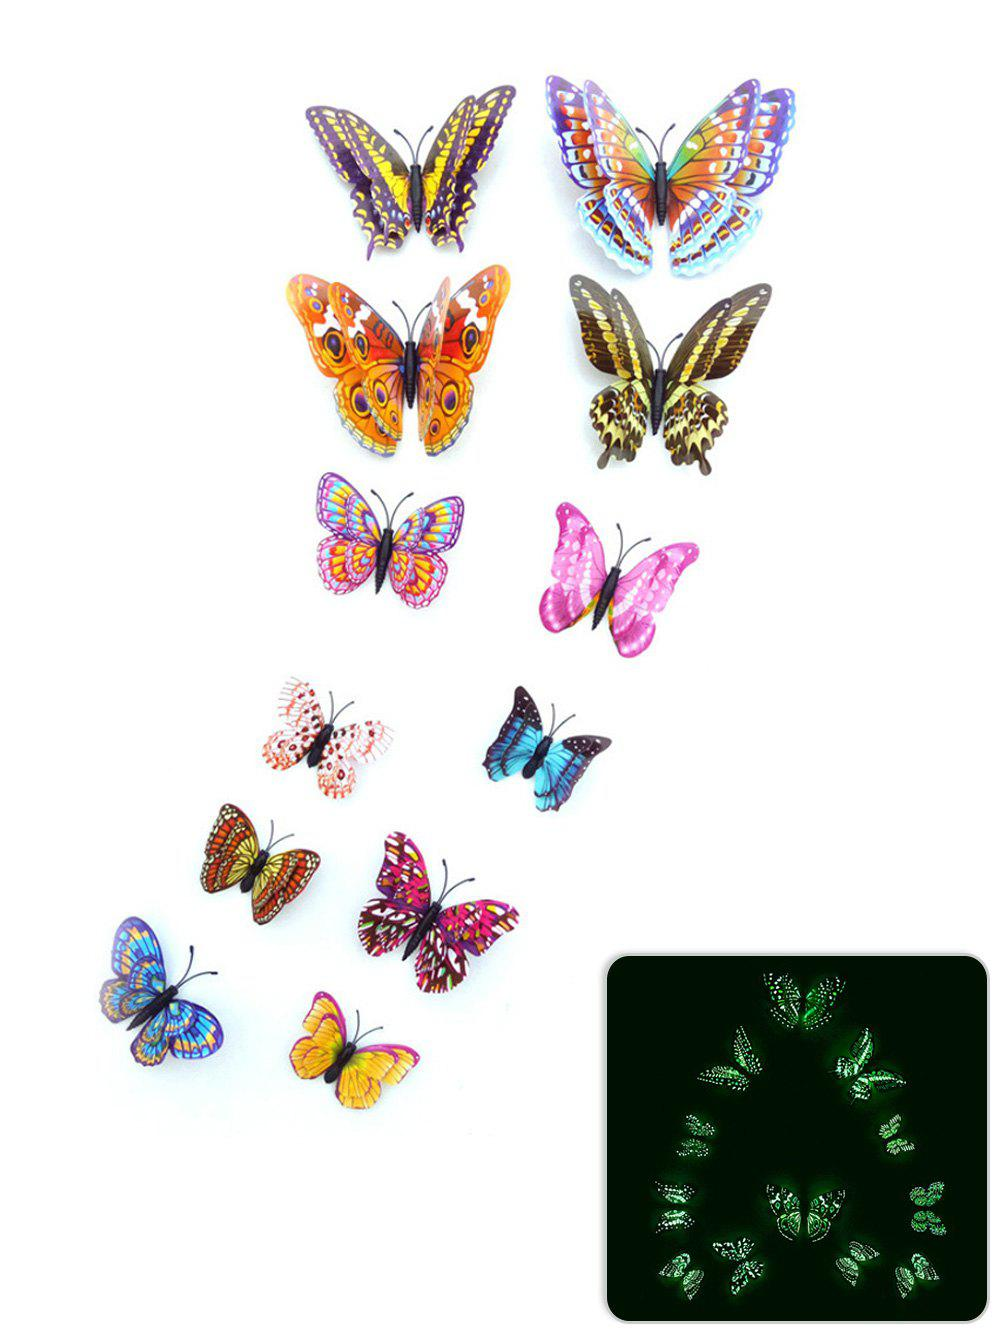 12Pcs/Set Glow in the Dark 3D Butterfly PVC DIY Wall Sticker платье рубашка fox yulia sway платье рубашка fox